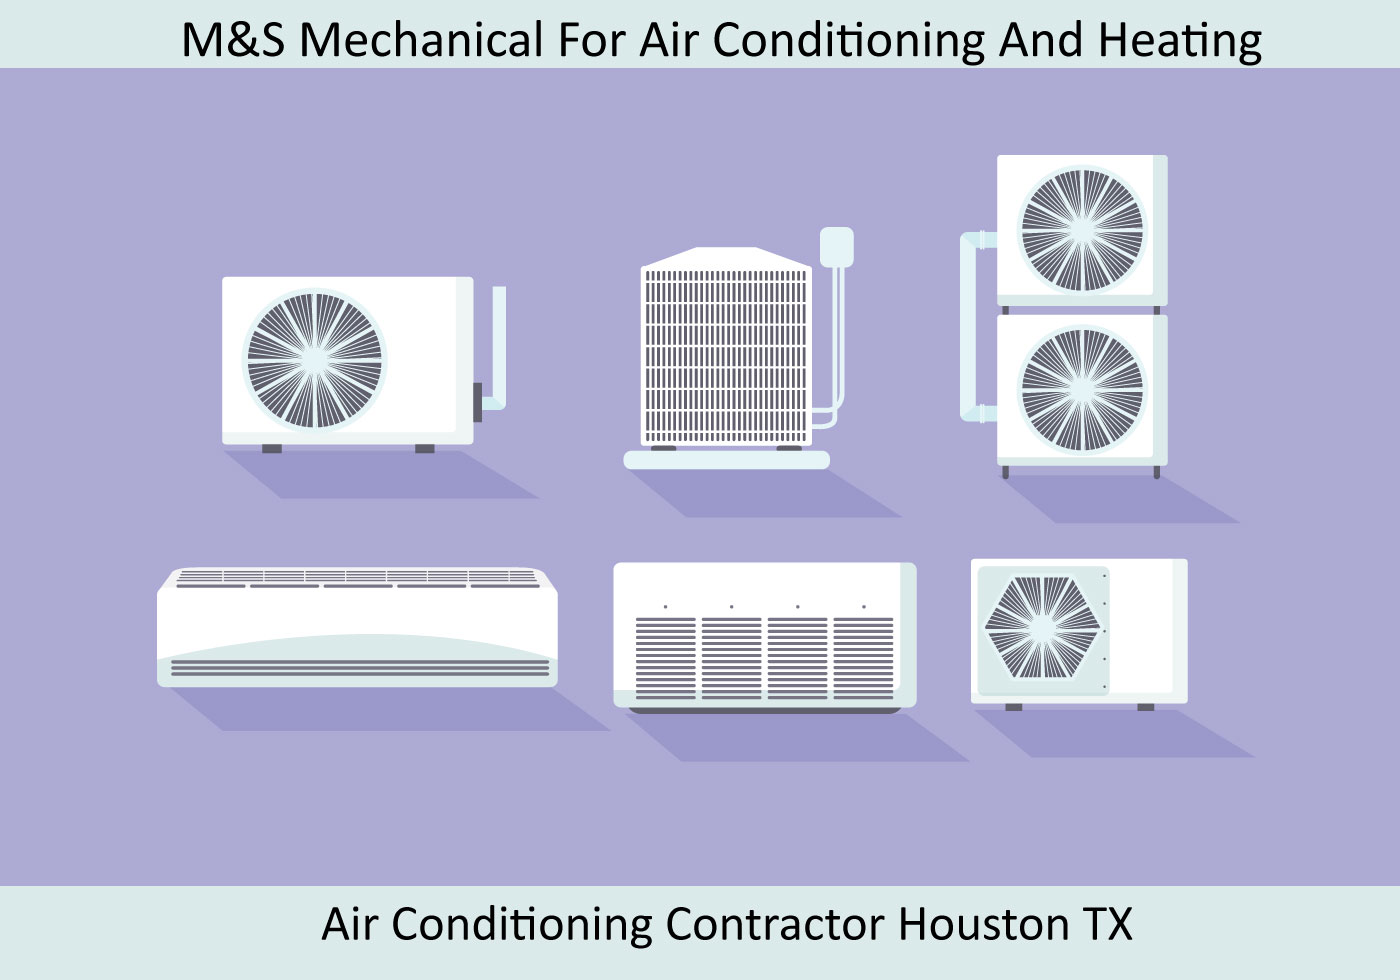 Air Conditioning Contractor Houston TX